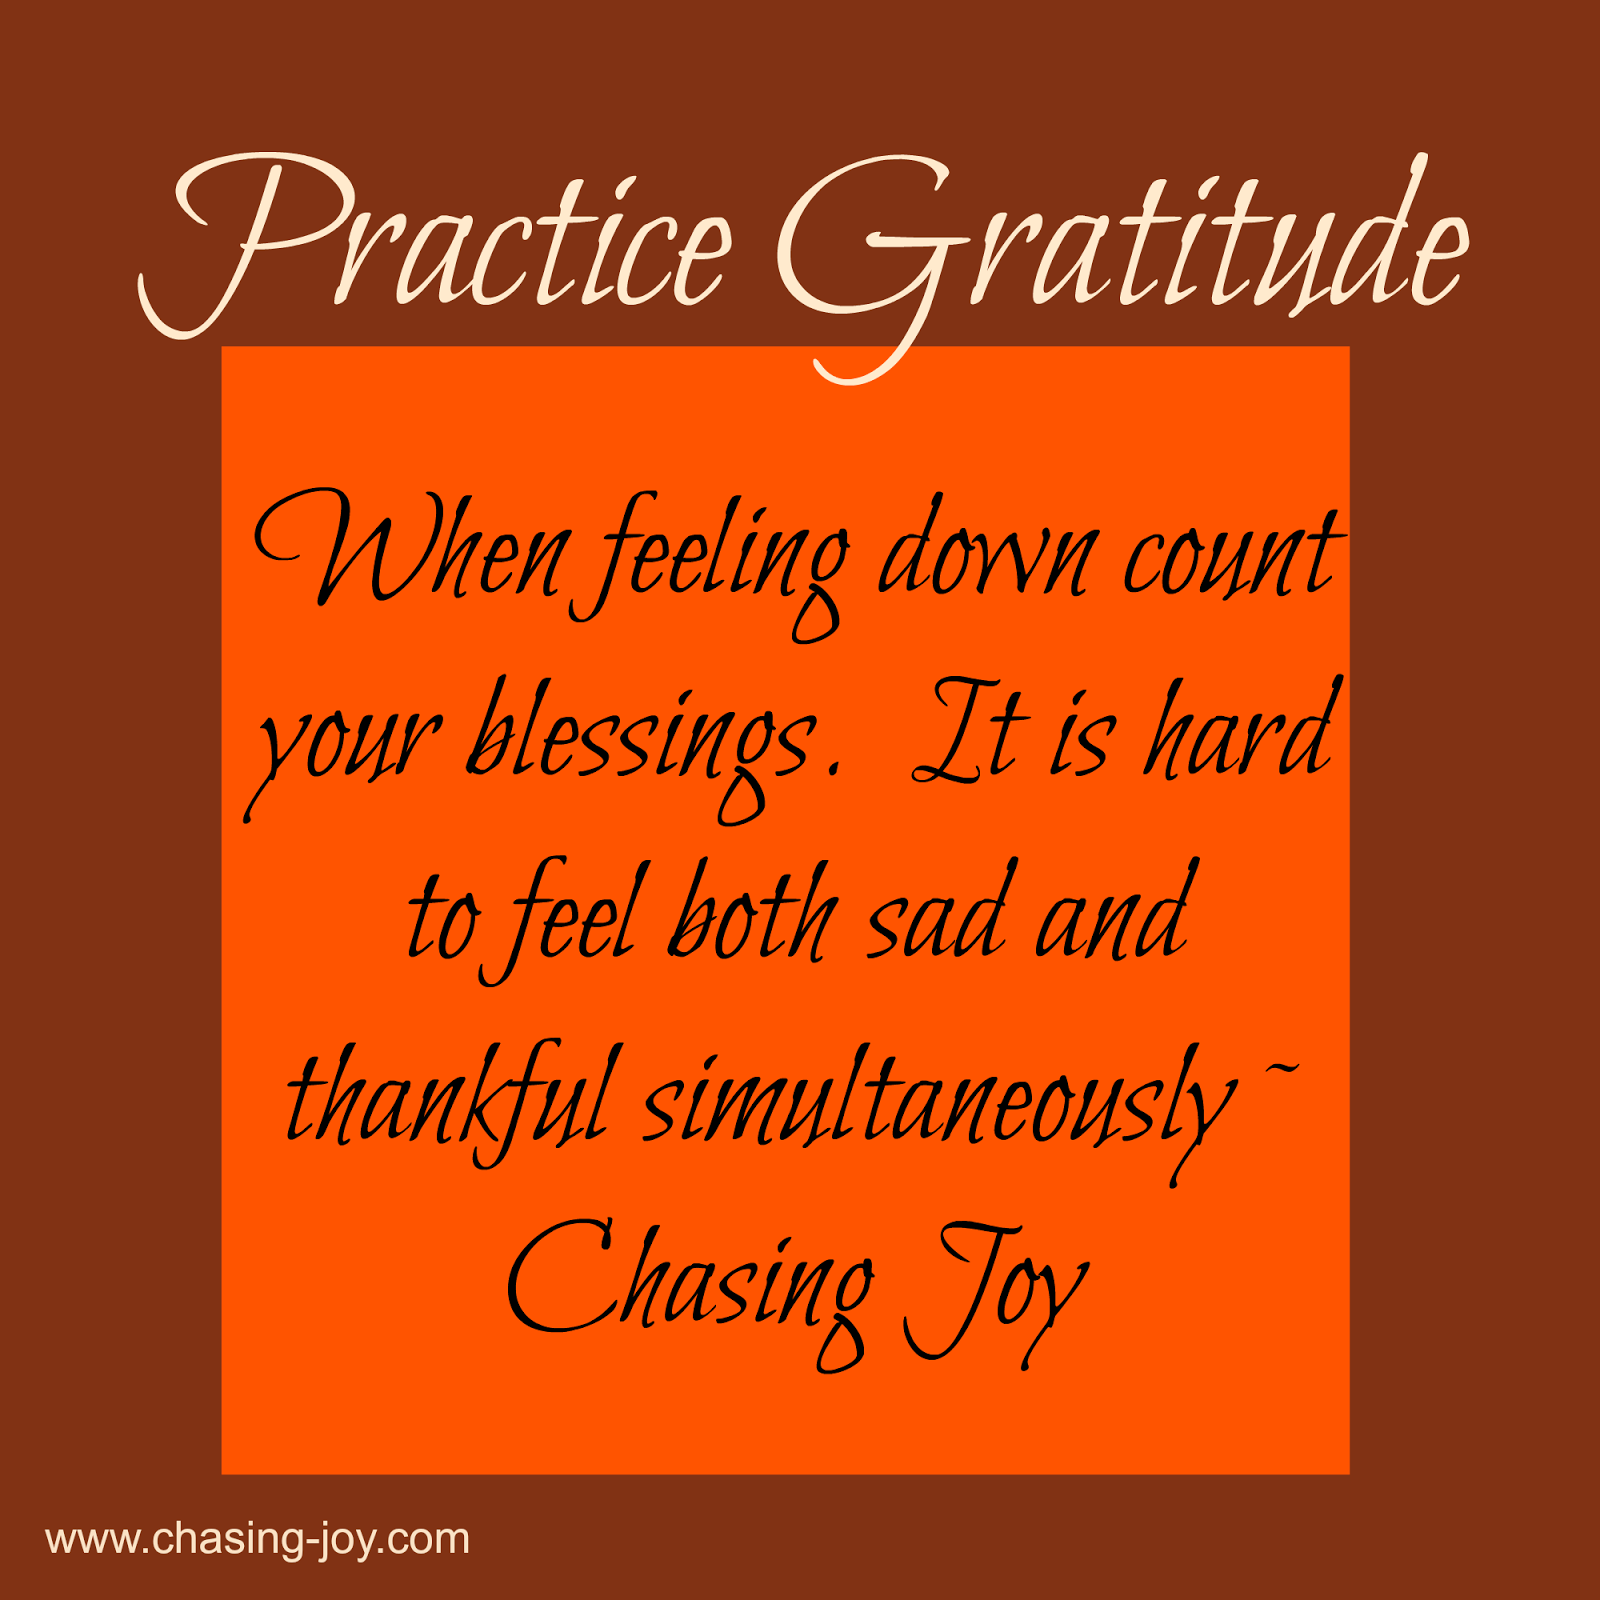 Count Your Blessings When Feeling Down to Feel Better